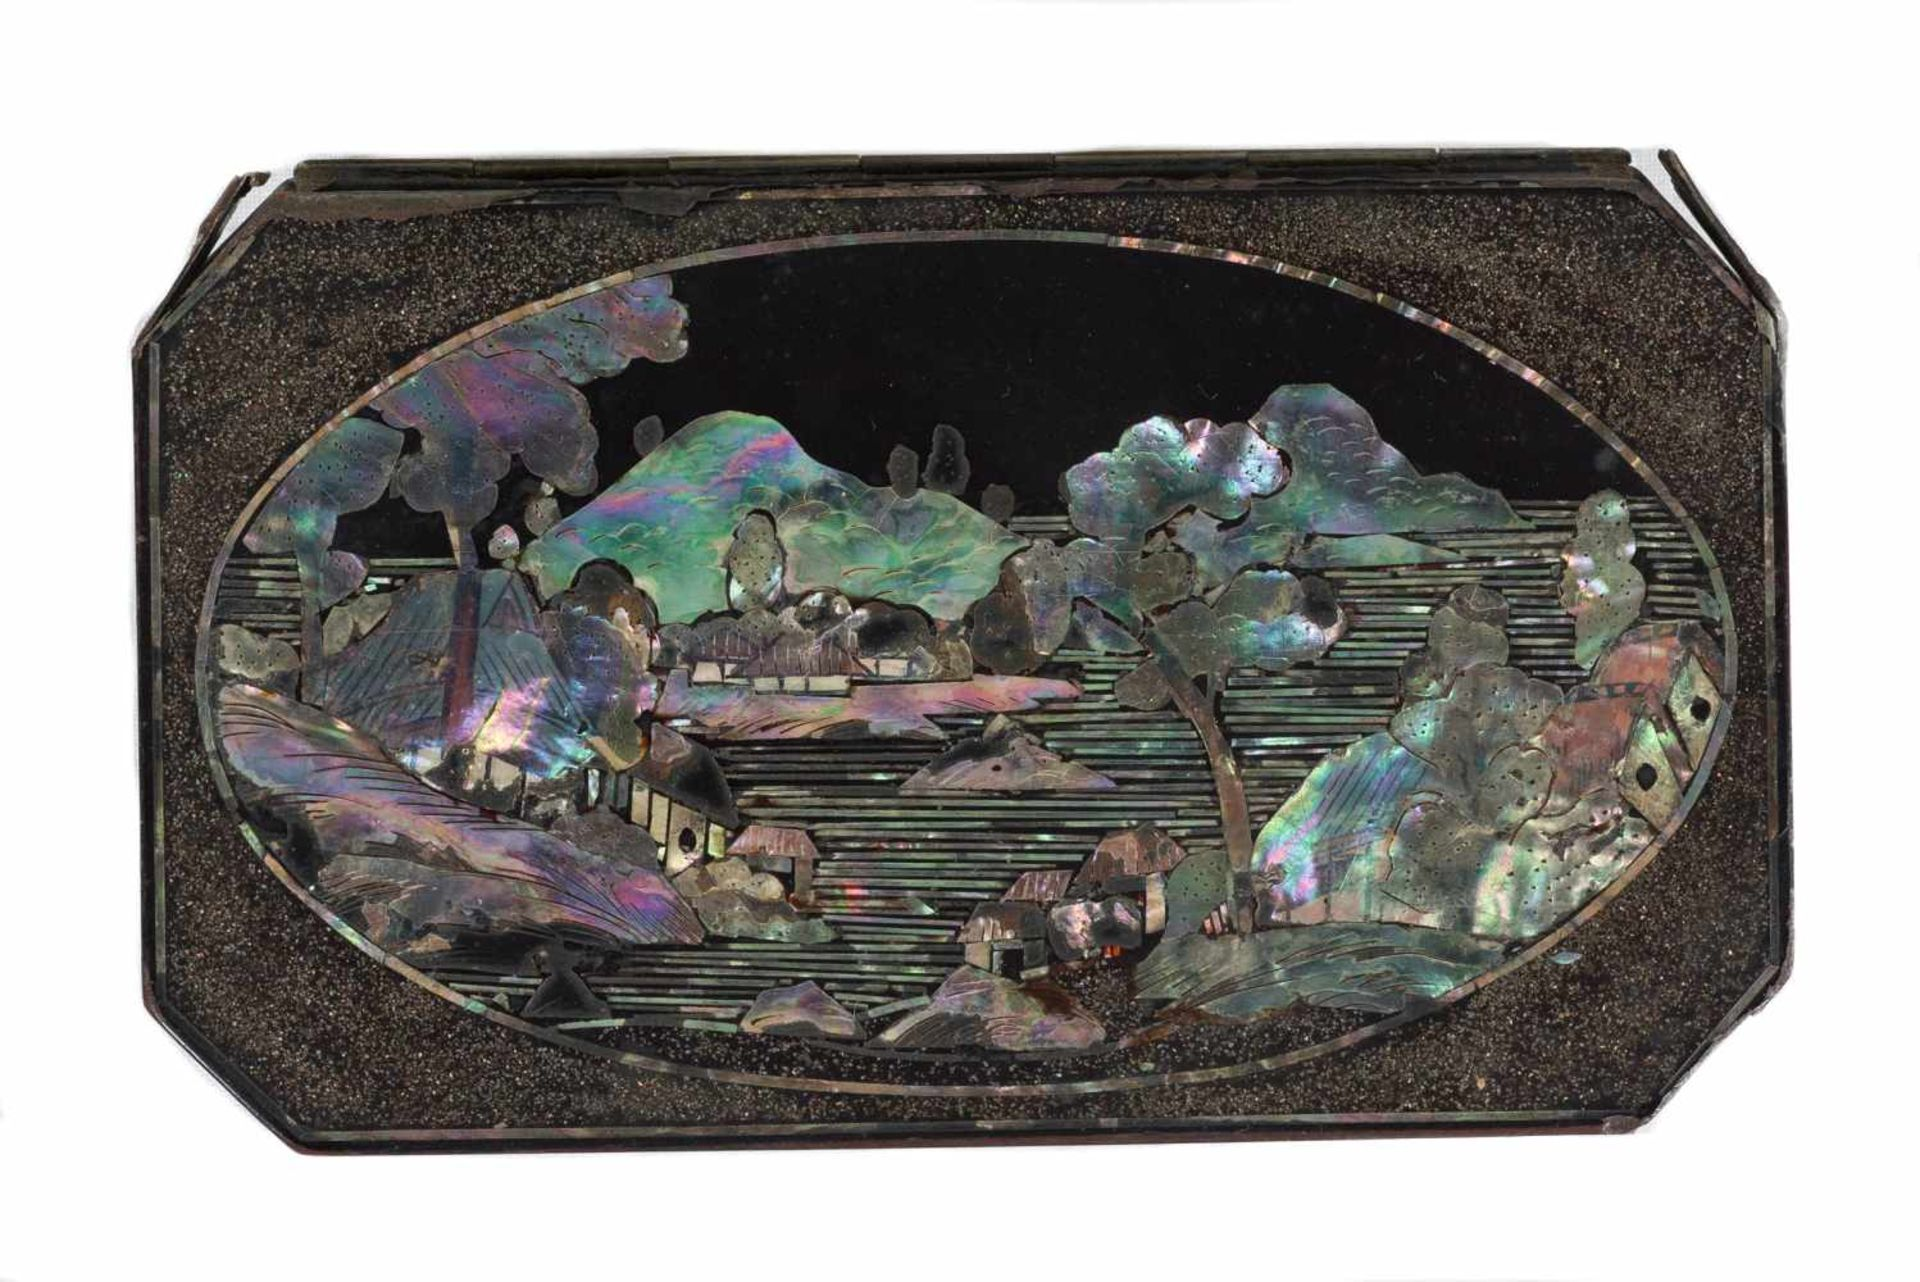 Los 55 - A pair of Japanese tobacco boxes, Black lacquer over copper, inlaid with mother-of-pearlEdo per